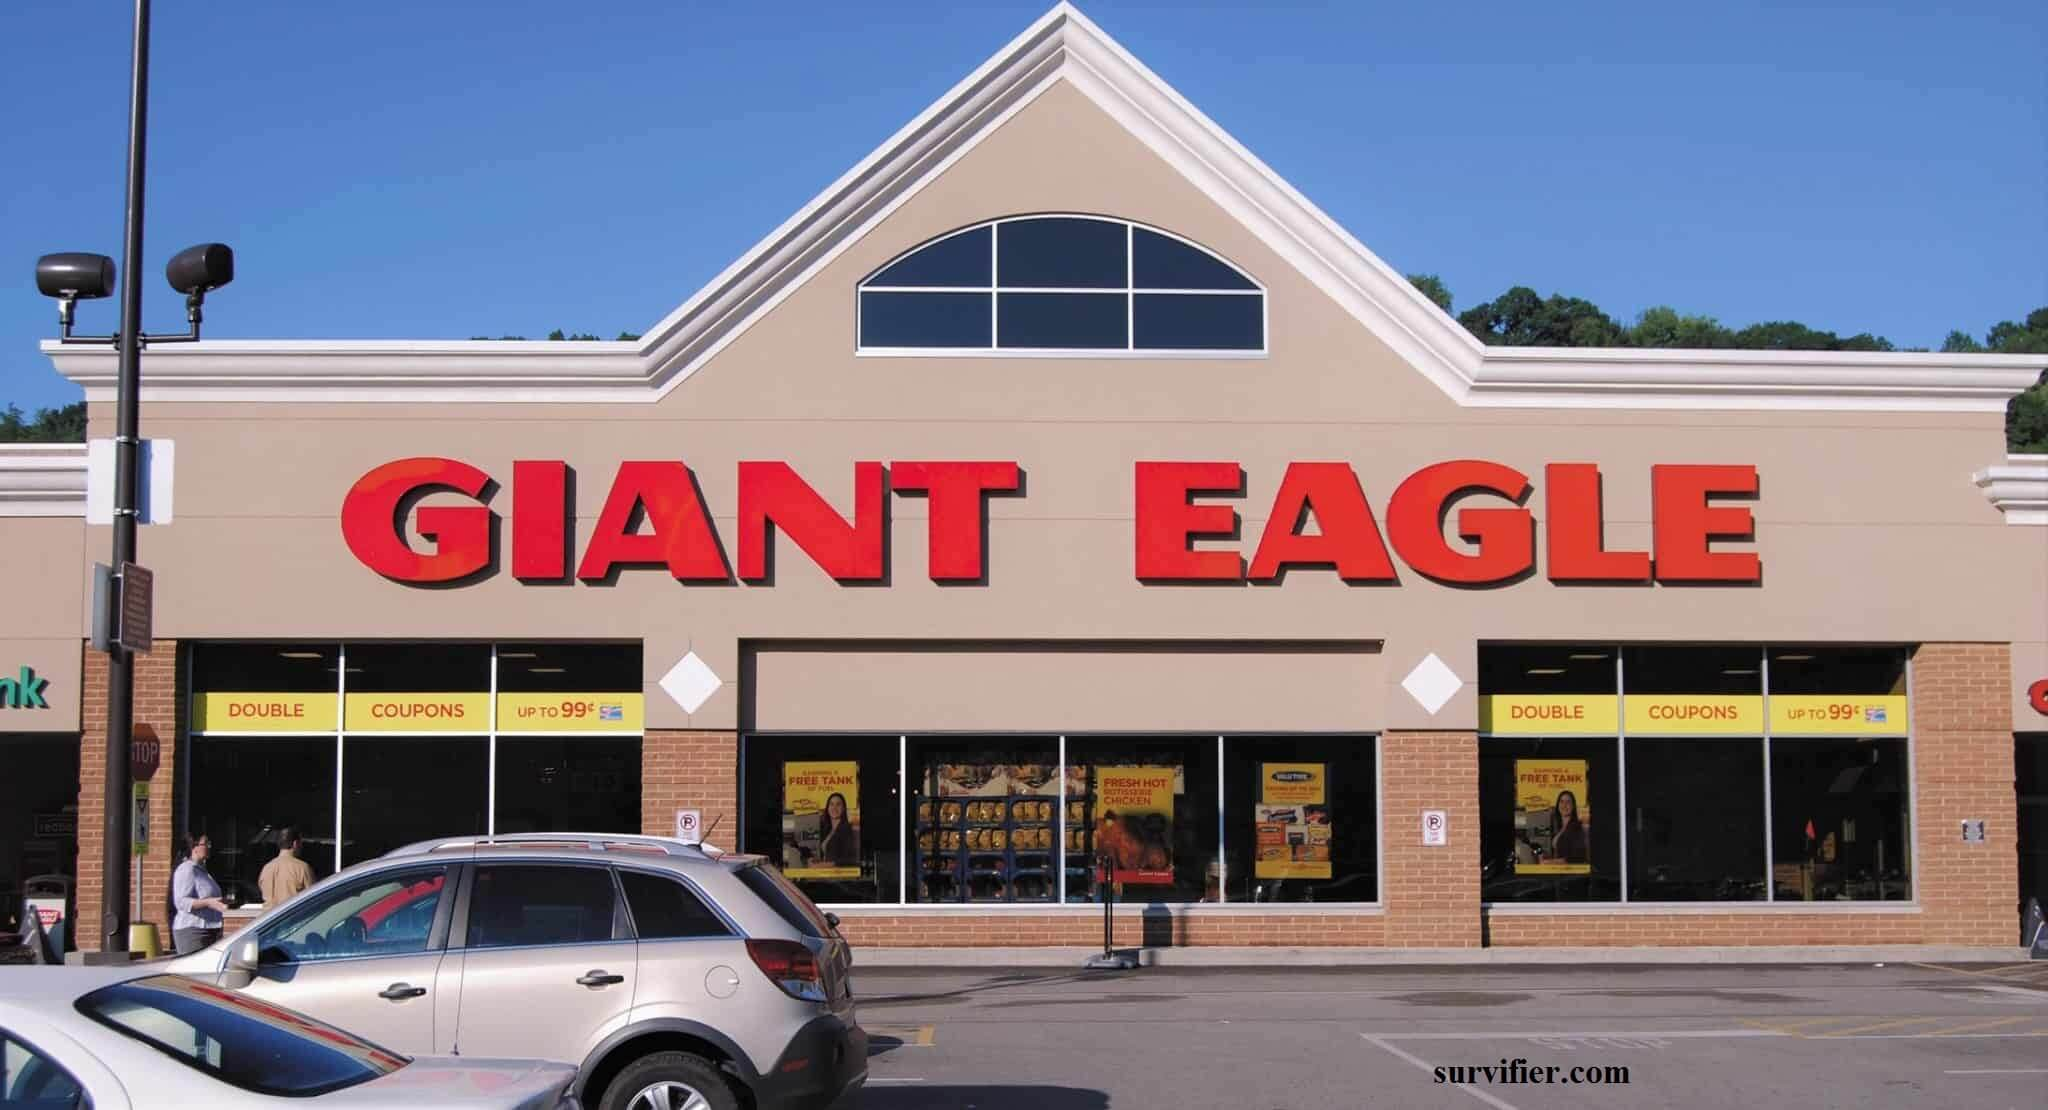 Giant Eagle-Survey office